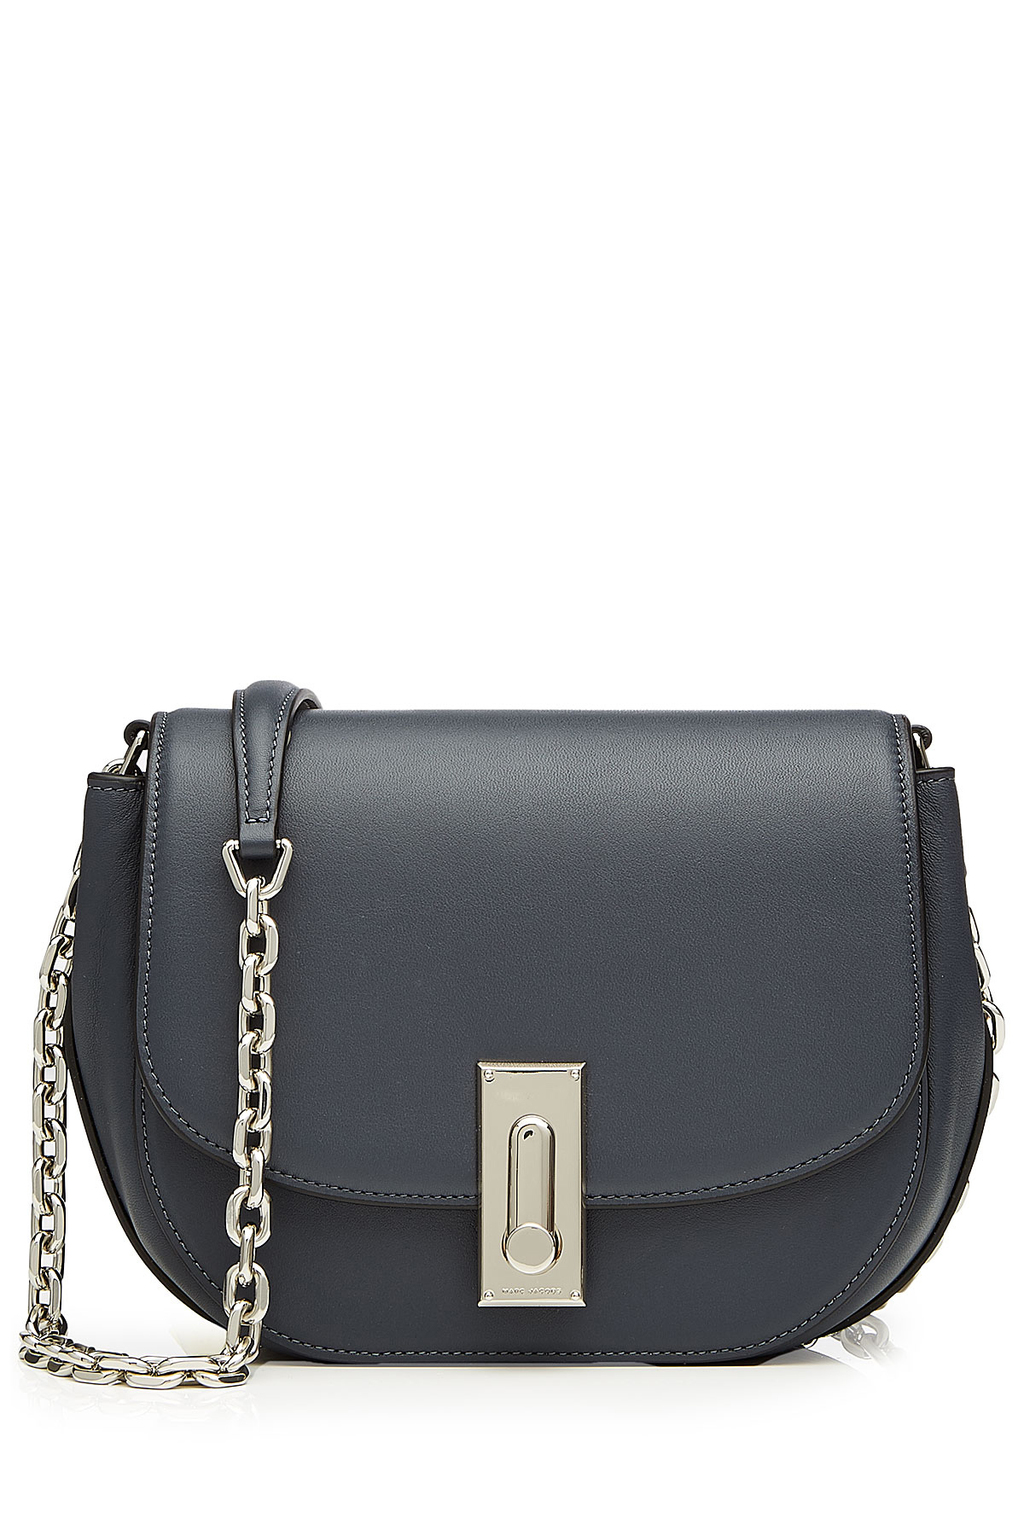 West End Leather Saddle Bag Grey - predominant colour: charcoal; occasions: casual; type of pattern: standard; style: messenger; length: across body/long; size: small; material: leather; pattern: plain; finish: plain; embellishment: chain/metal; season: s/s 2016; wardrobe: highlight